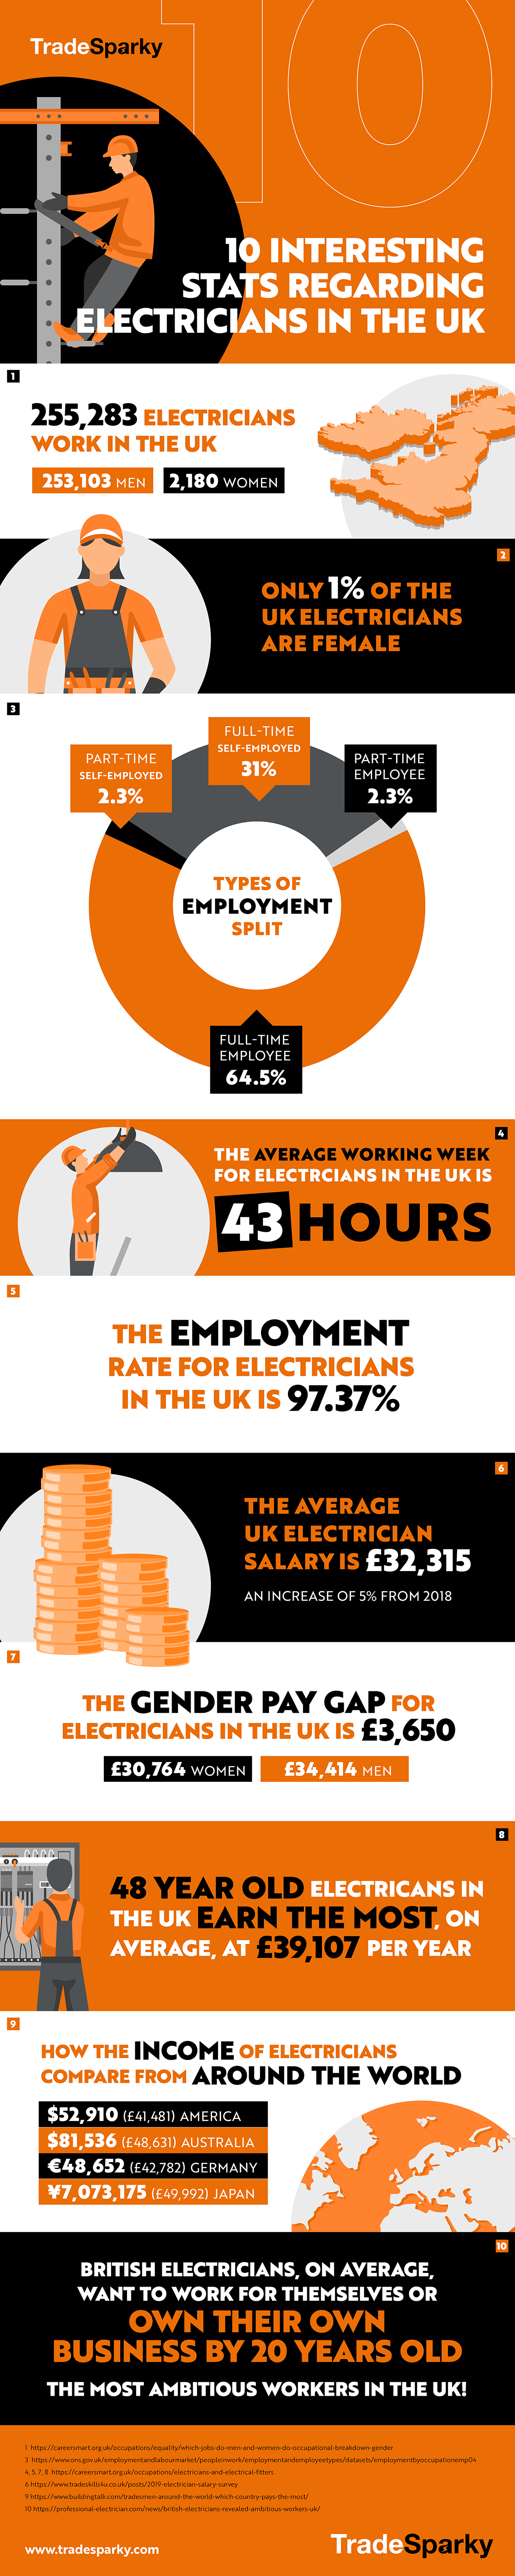 10 Interesting Stats Regarding Electricians in the UK #infographic